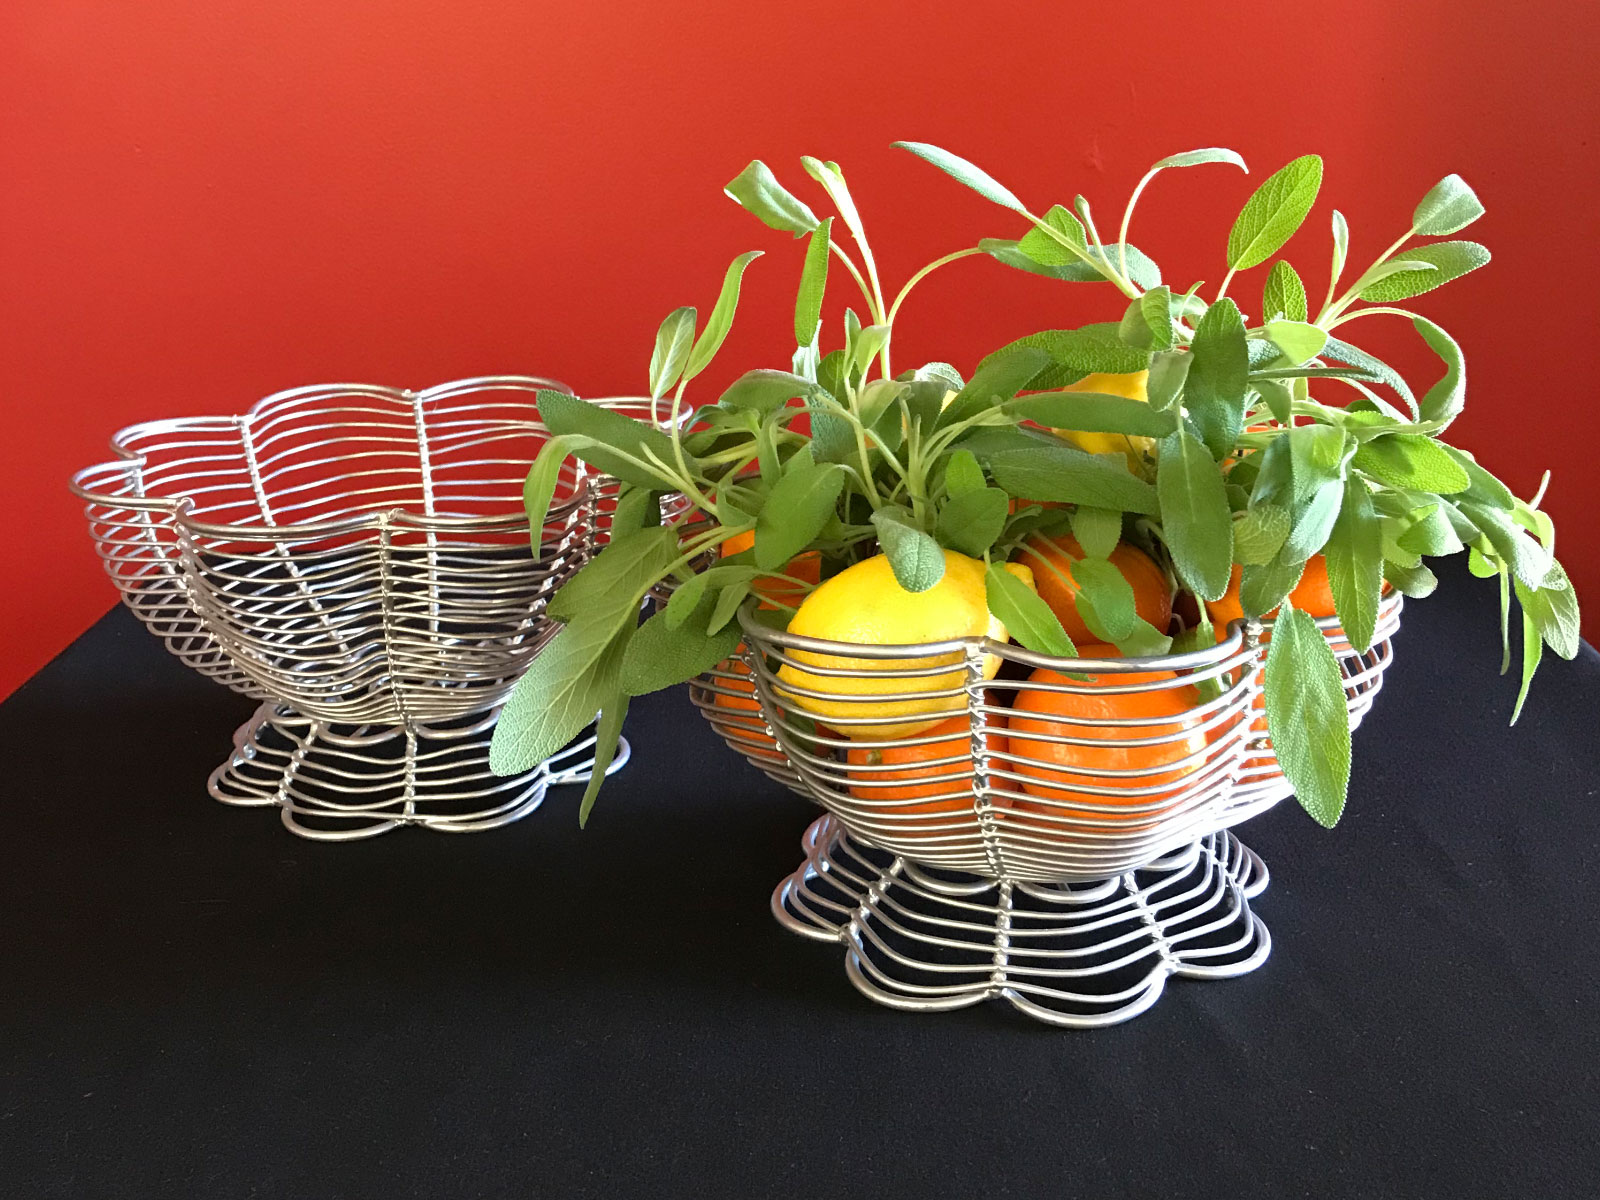 Several wax fruit centerpieces including oranges and lemons in white baskets